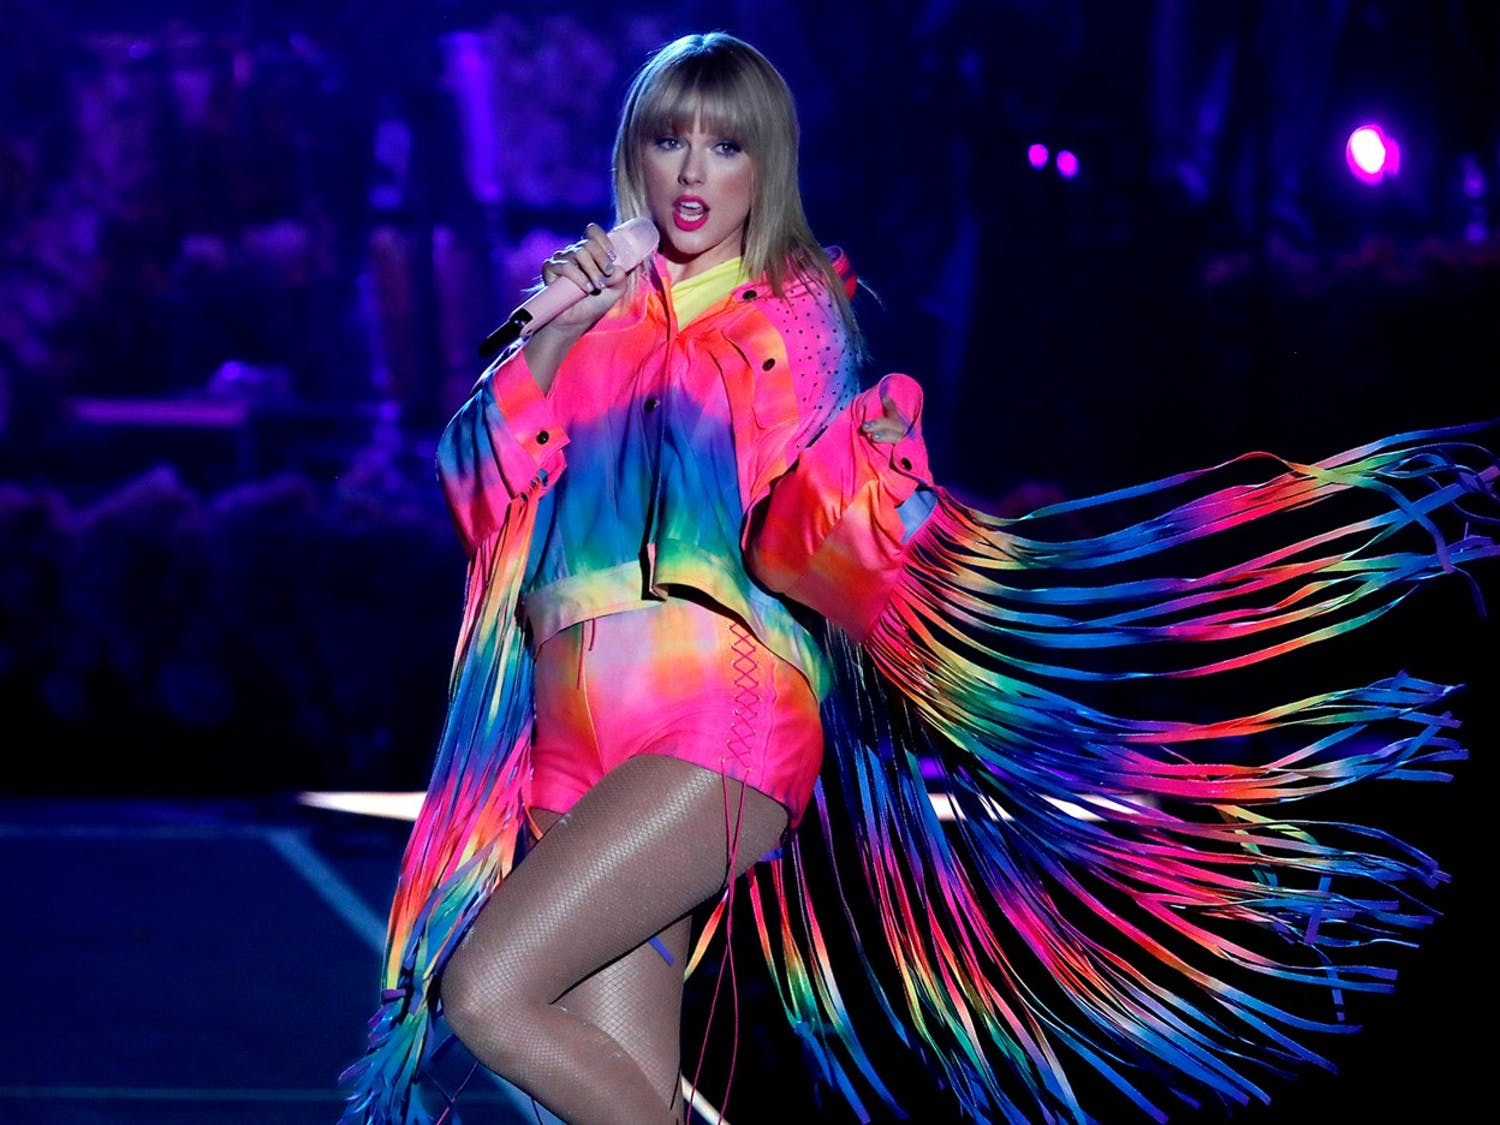 Taylor Swift performs at Wango Tango 2019 at the Dignity Health Sports Park in Carson, Calif. on June 1, 2019.  (Luis Sinco/Los Angeles Times/TNS)